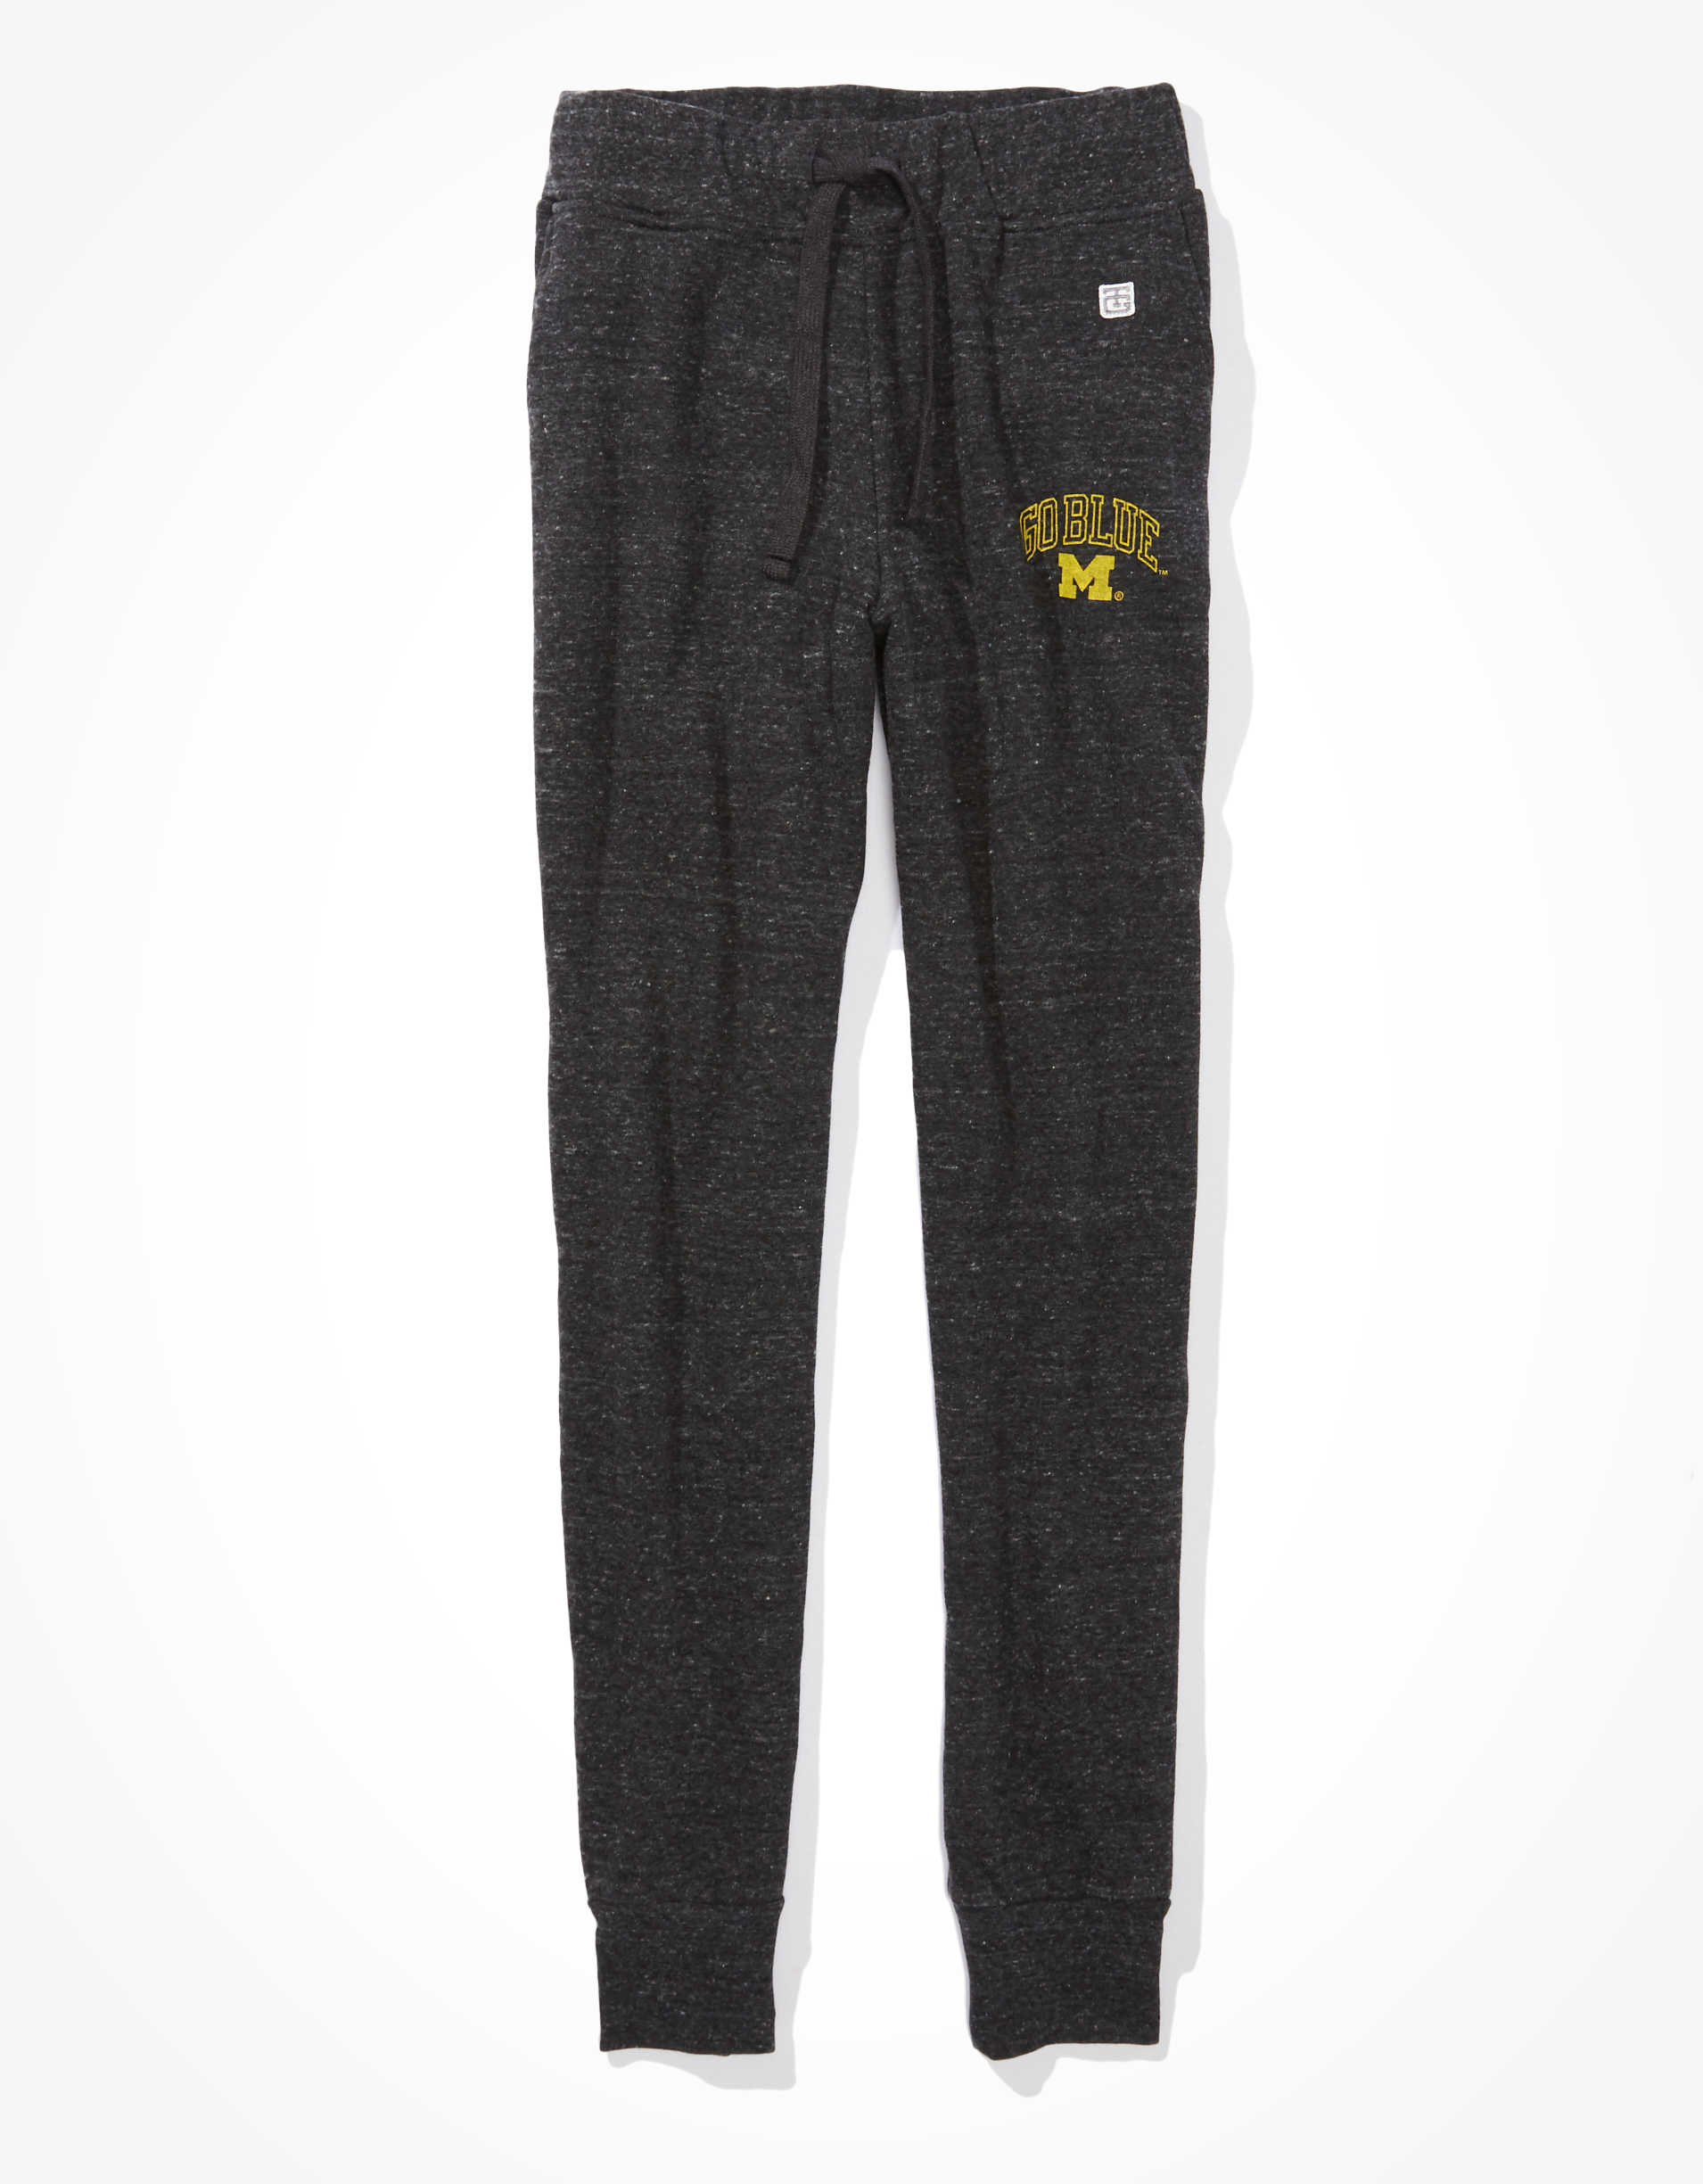 Tailgate Women's Michigan Wolverines Sweatpant